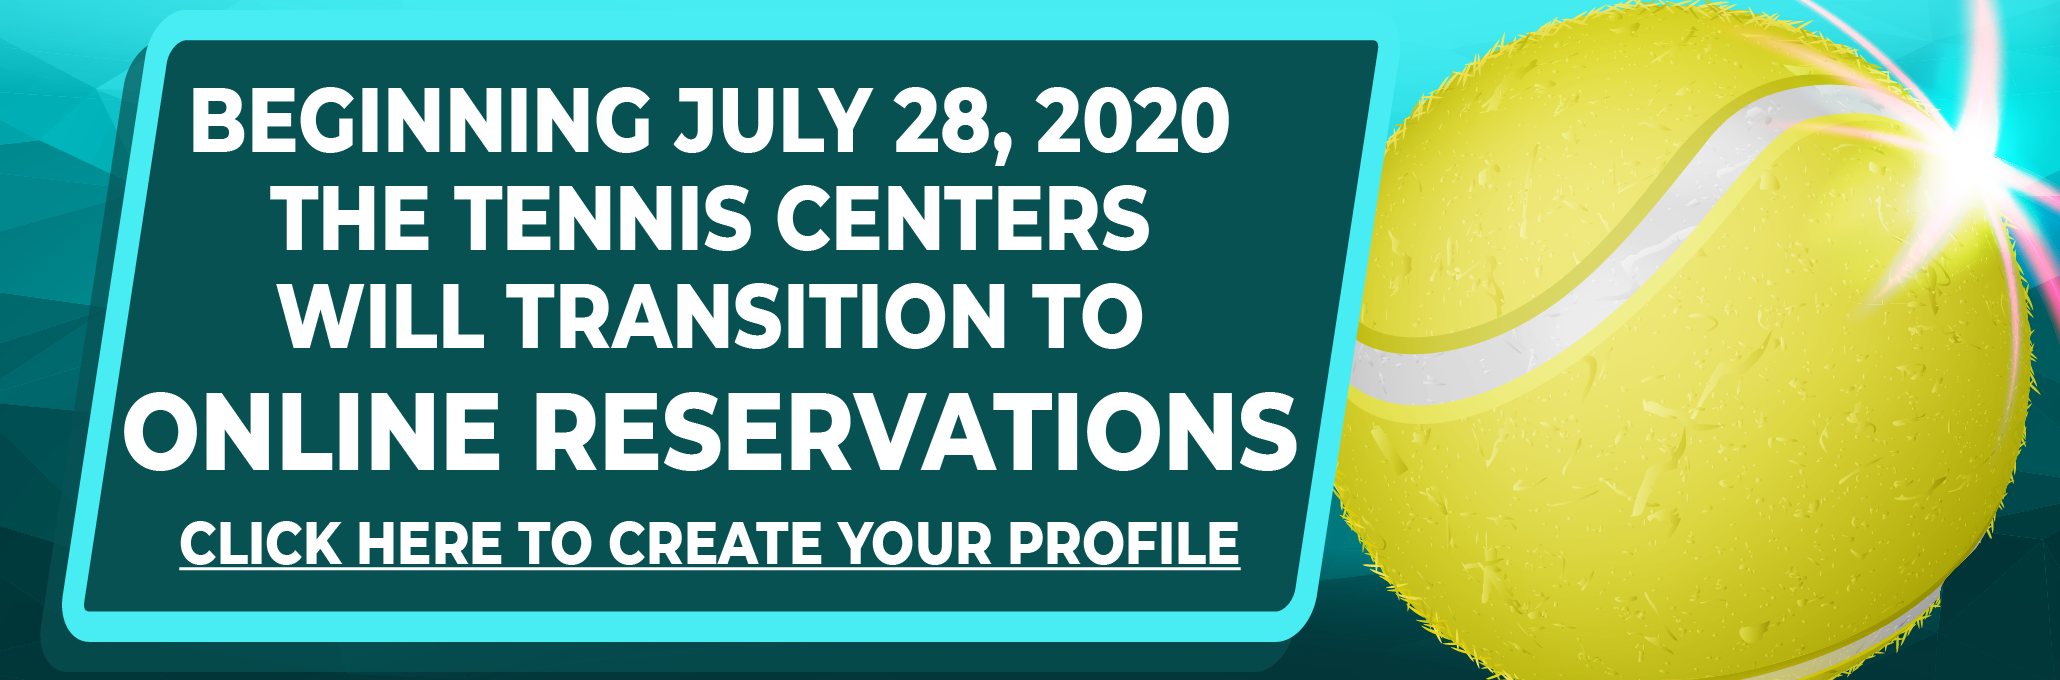 BEGINNING JULY 28 THE TENNIS CENTERS WILL TRANSITION TO ONLINE RESERVATIONS.  CLICK HERE TO CREATE YOUR PLAYER PROFILE